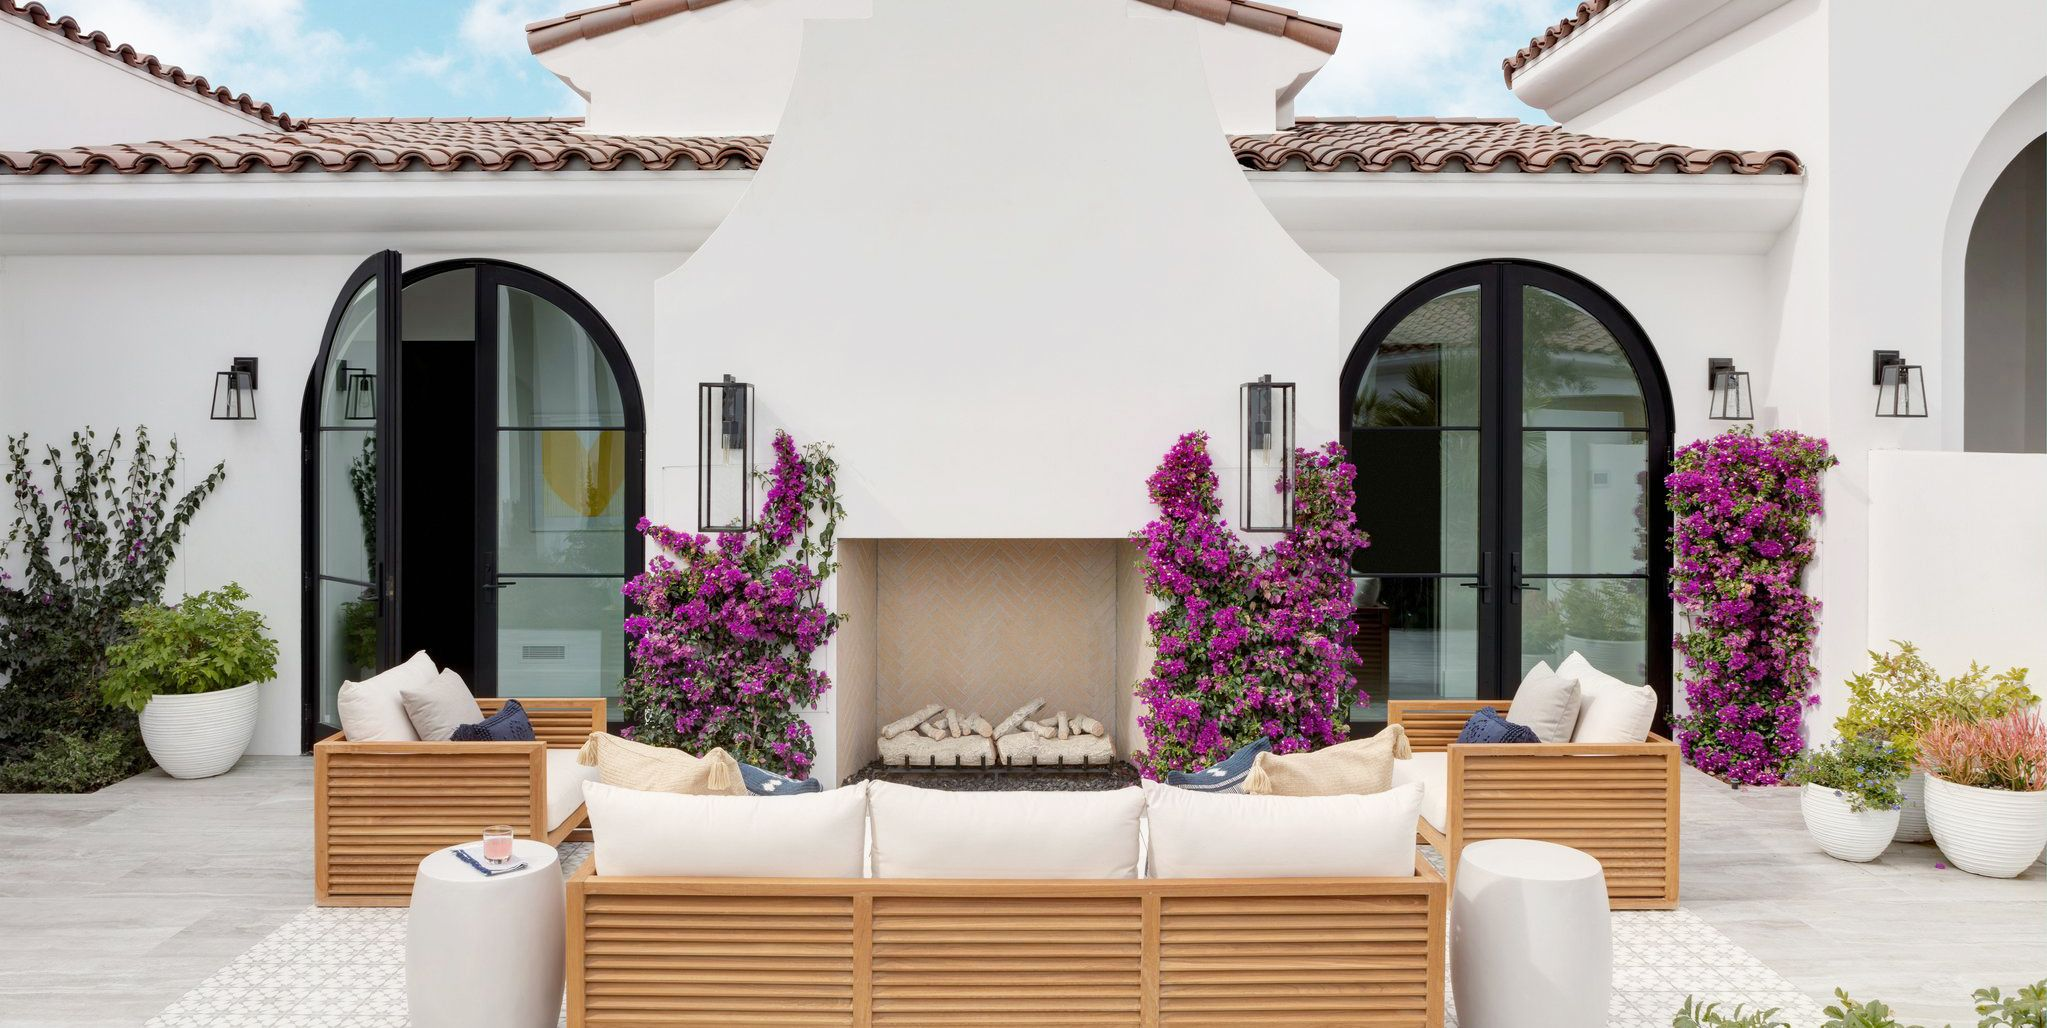 Wonderful Pool Finish Ideas For You To Copy: 40 Best Patio Ideas For 2019